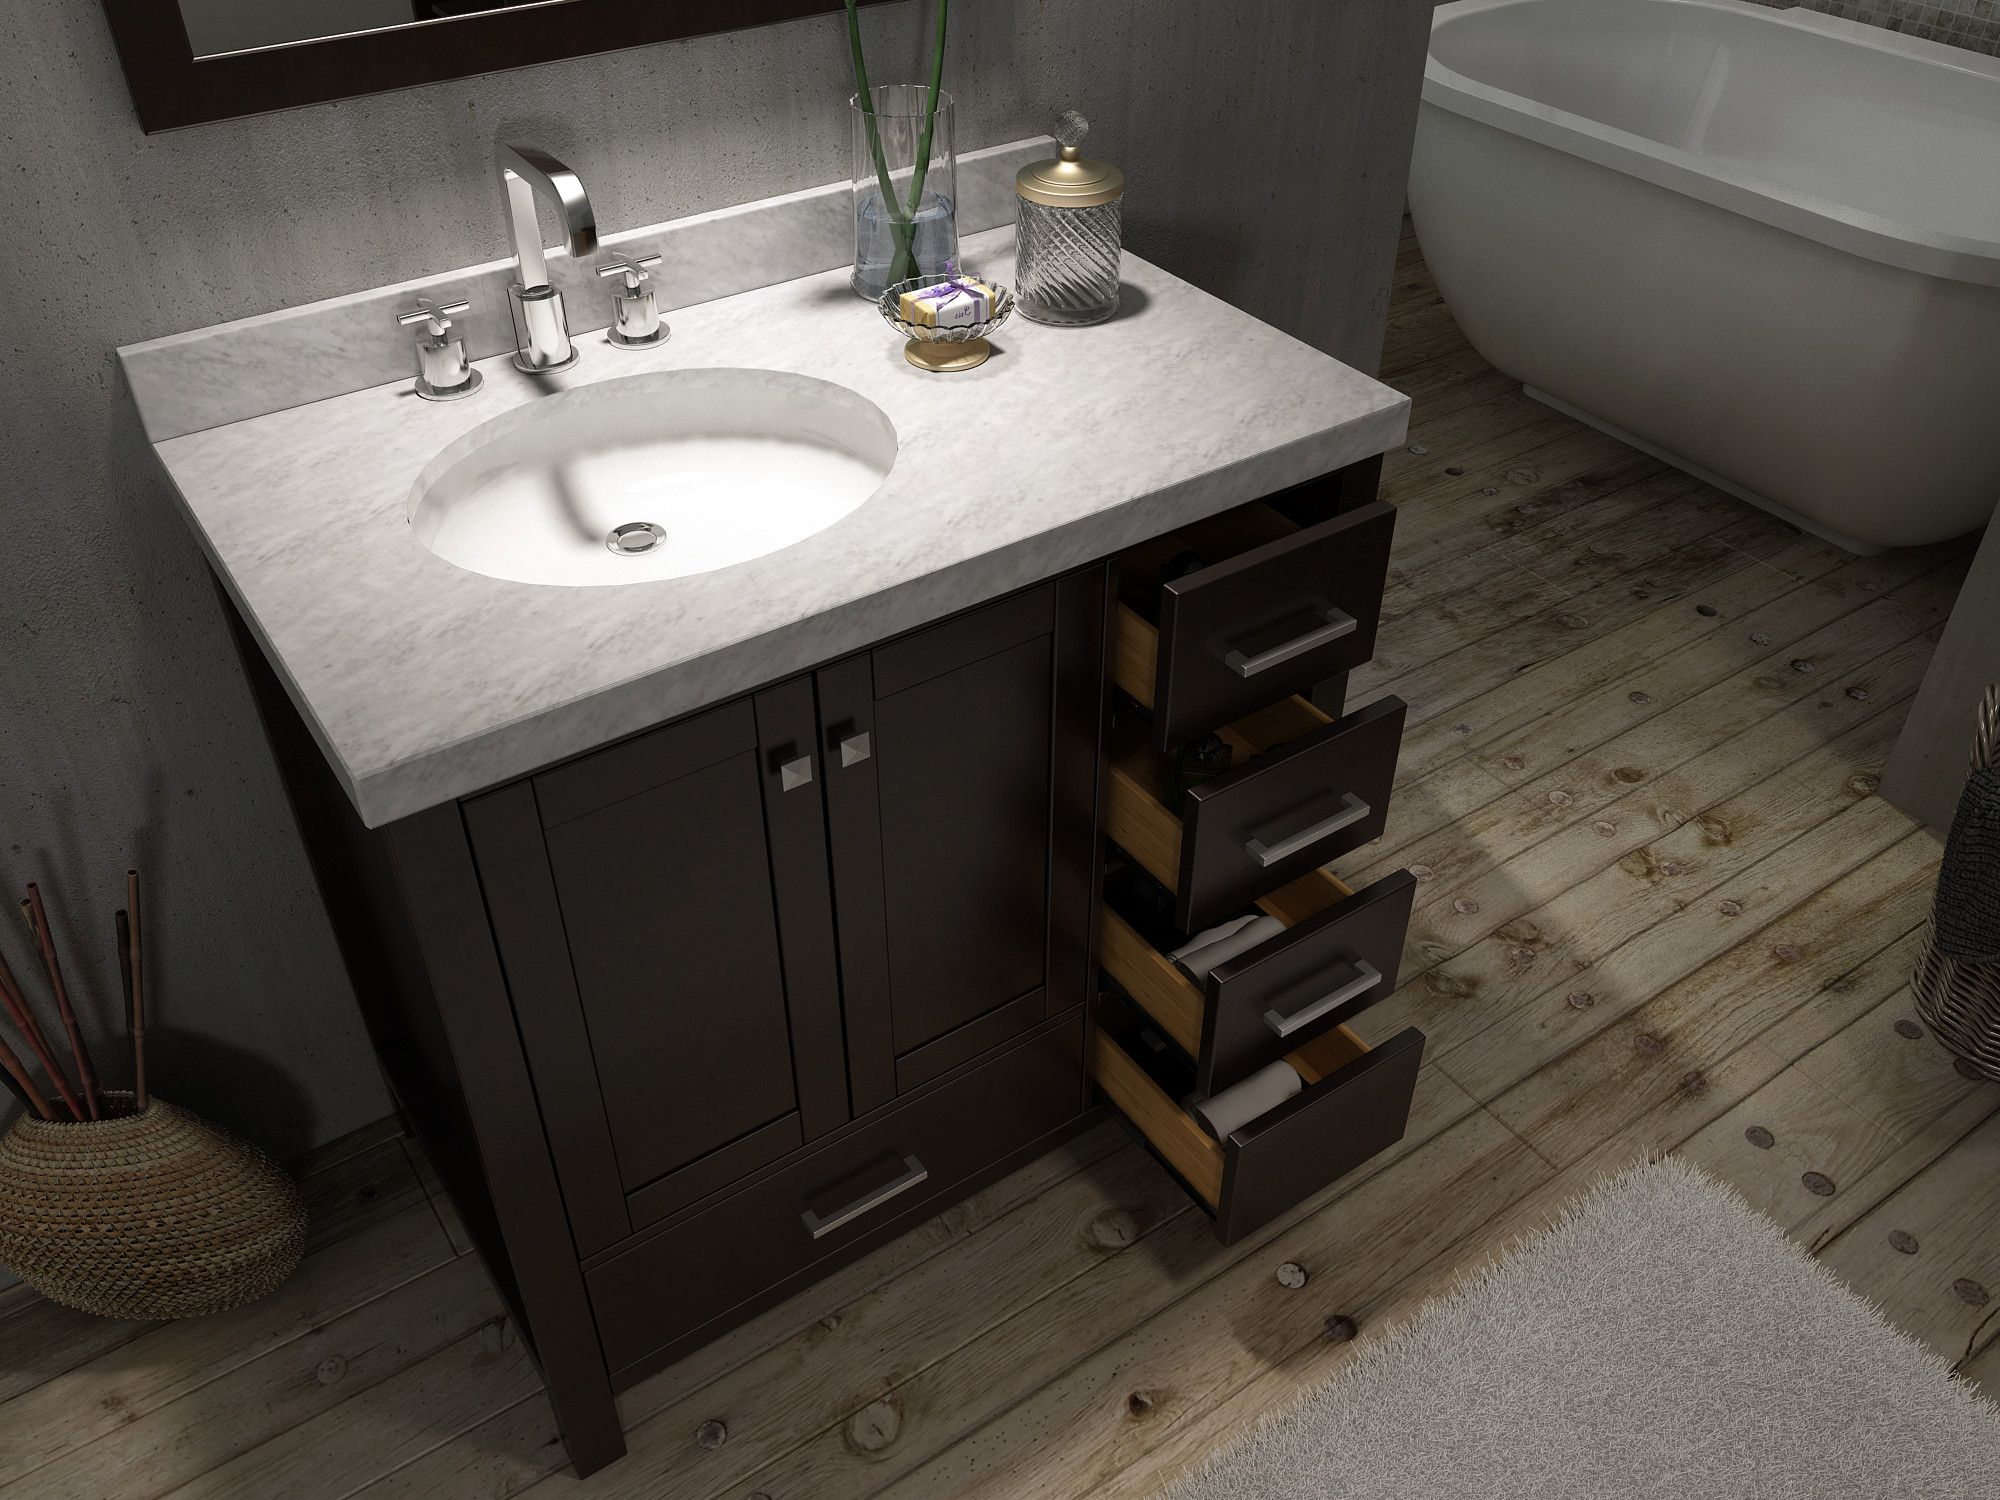 Exceptional 42 Bathroom Vanity Canada With Top With Offset Sink